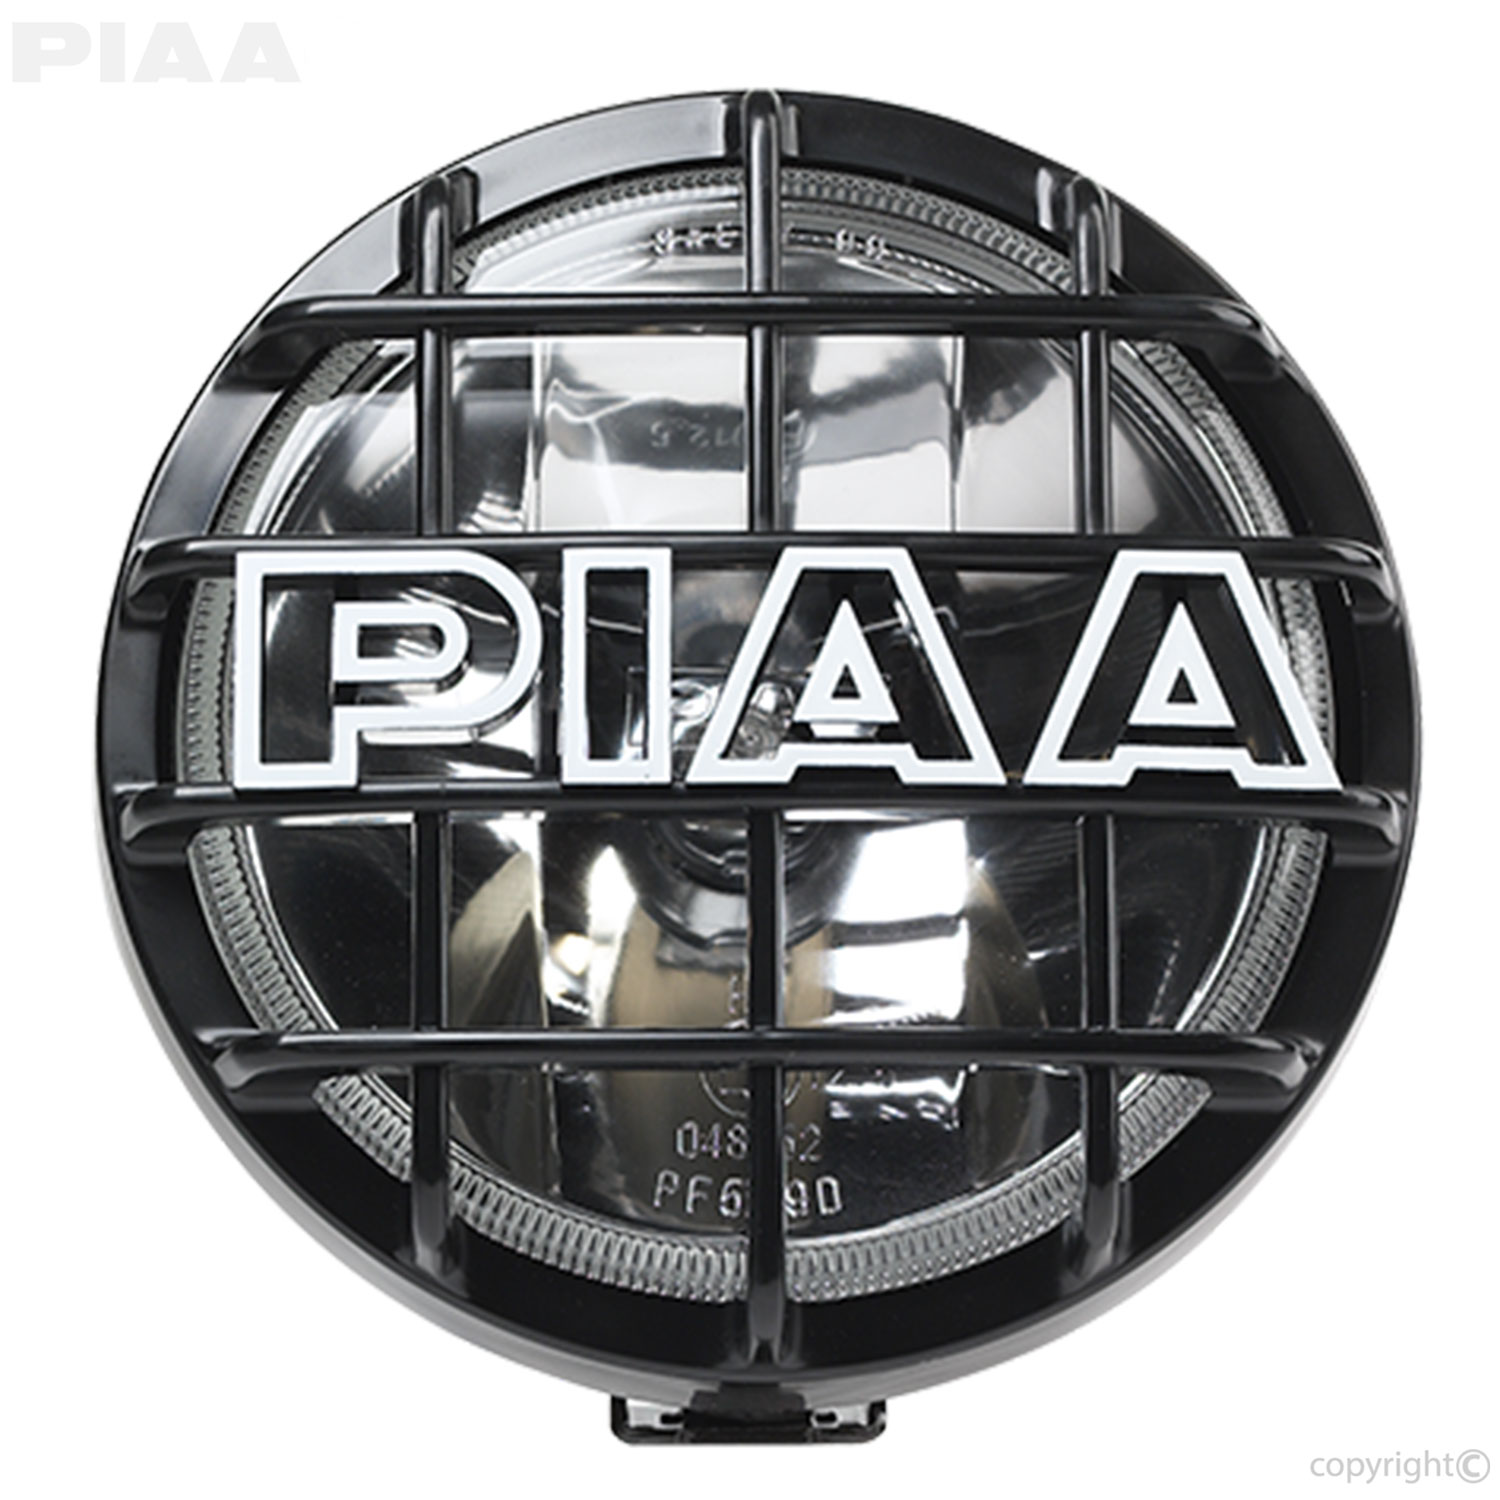 piaa 05296 520 front hr?bw\=1000\&w\=1000\&bh\=1000\&h\=1000 piaa 5296 wiring diagrams wiring diagrams piaa pl5fb wiring diagram at crackthecode.co